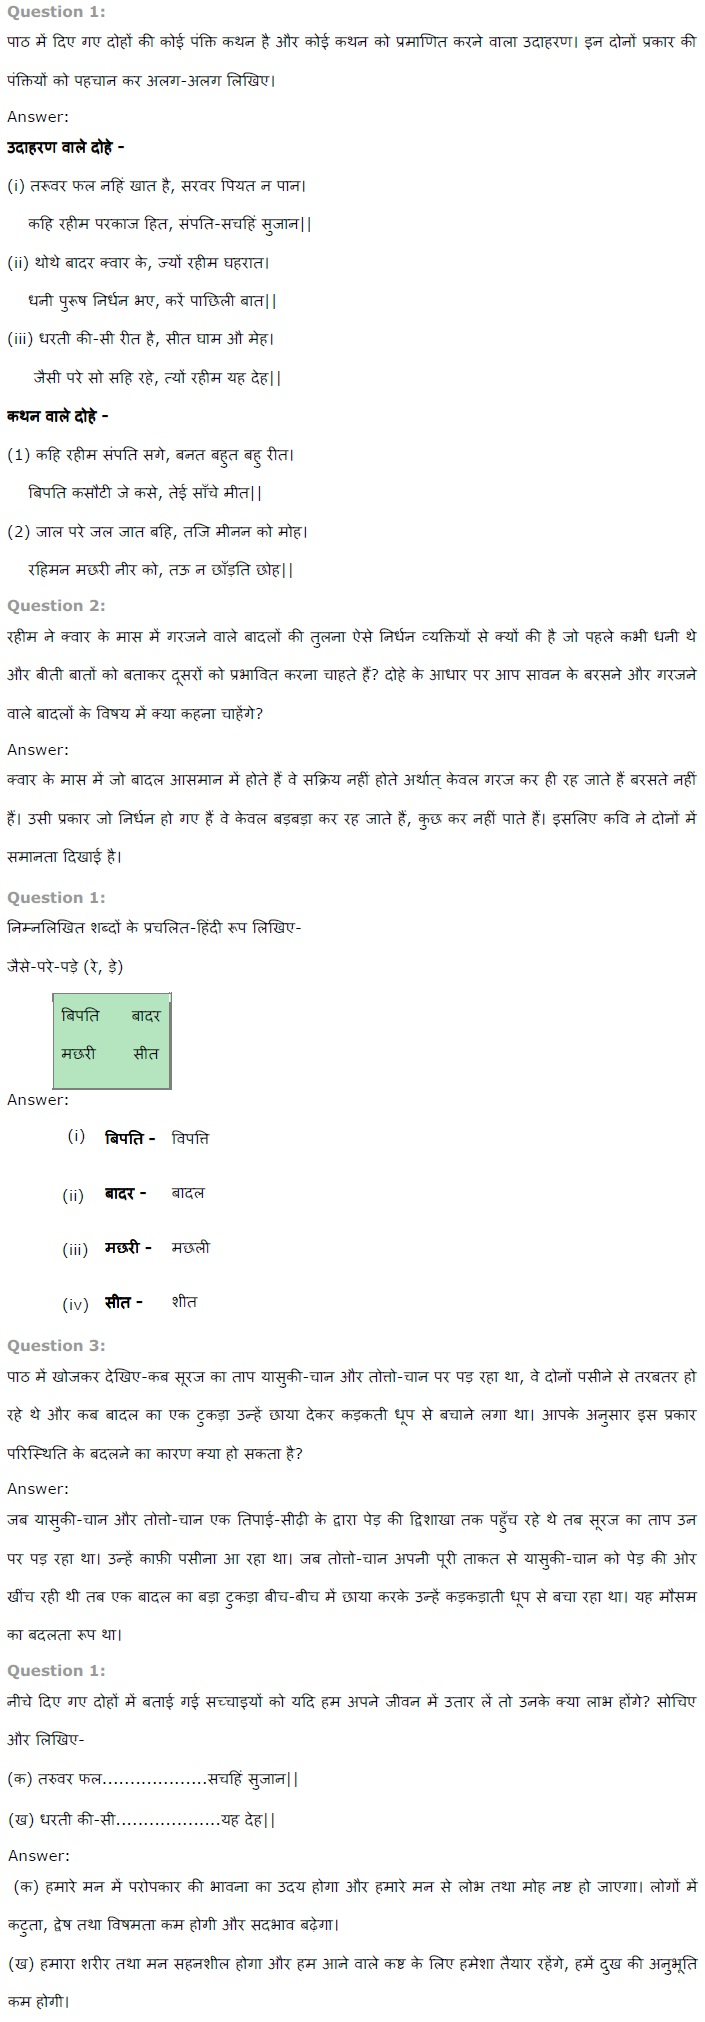 NCERT Solutions for Class 7th Hindi Chapter 11 रहीम की दोहे PDF Download